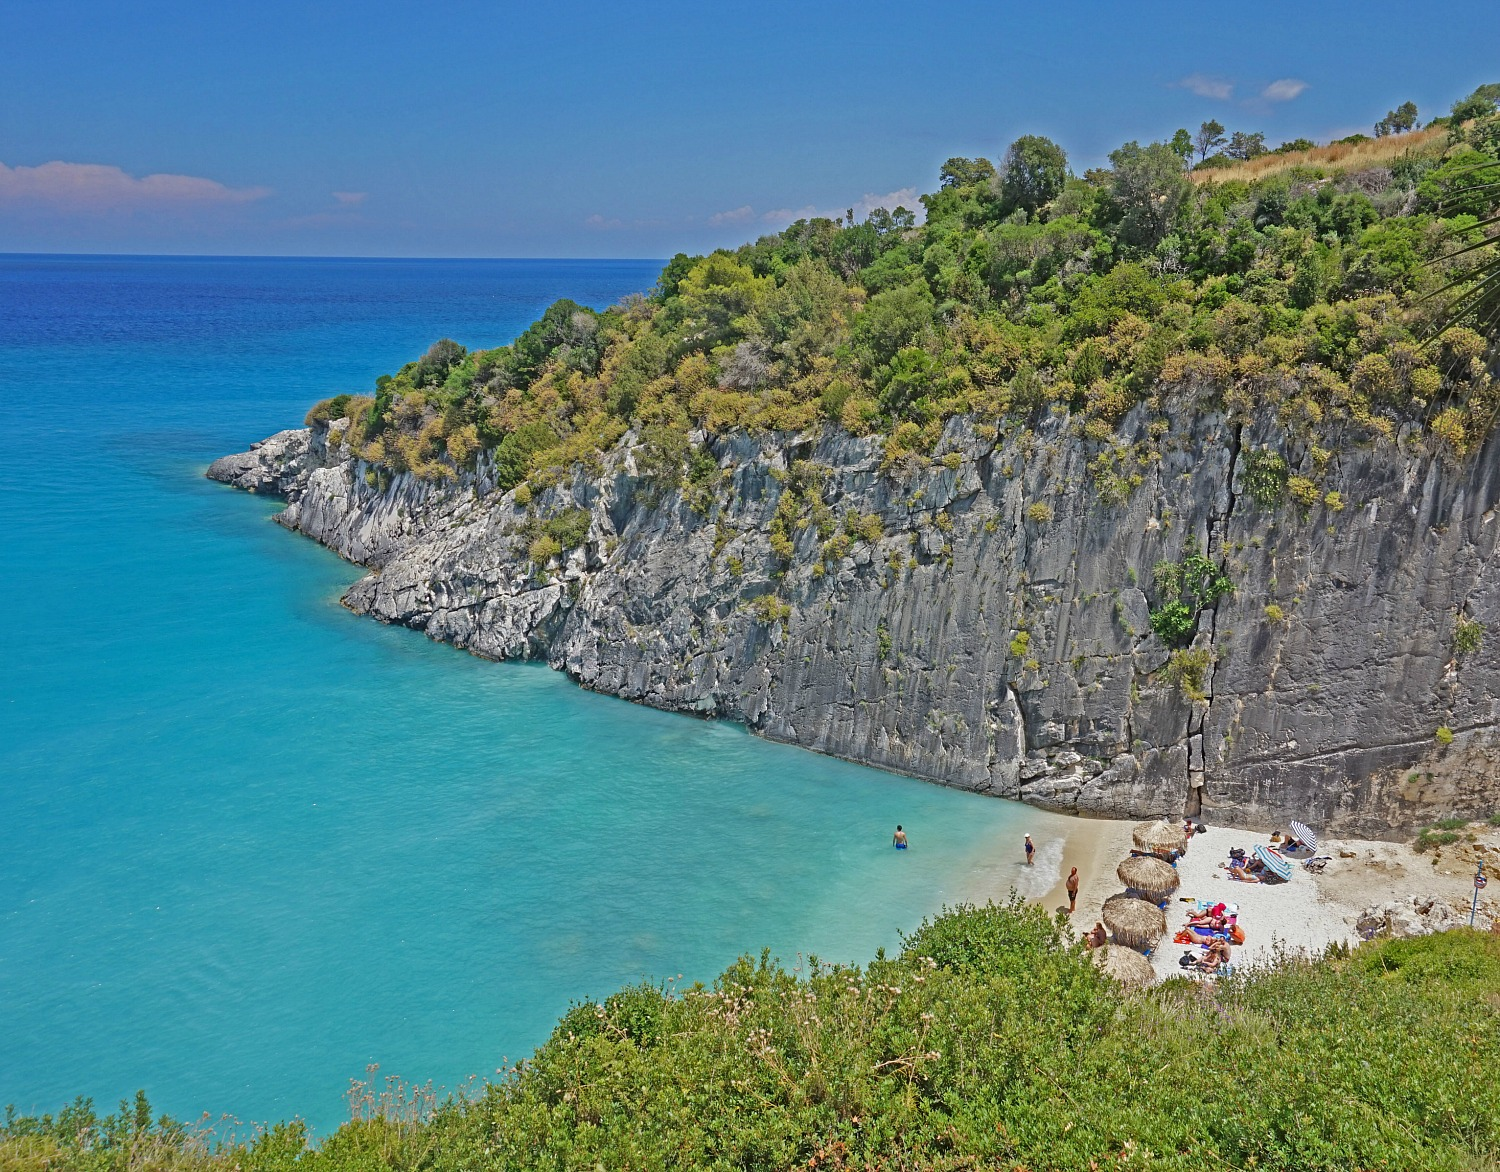 Zakynthos Greece - how to visit. Secluded beach.